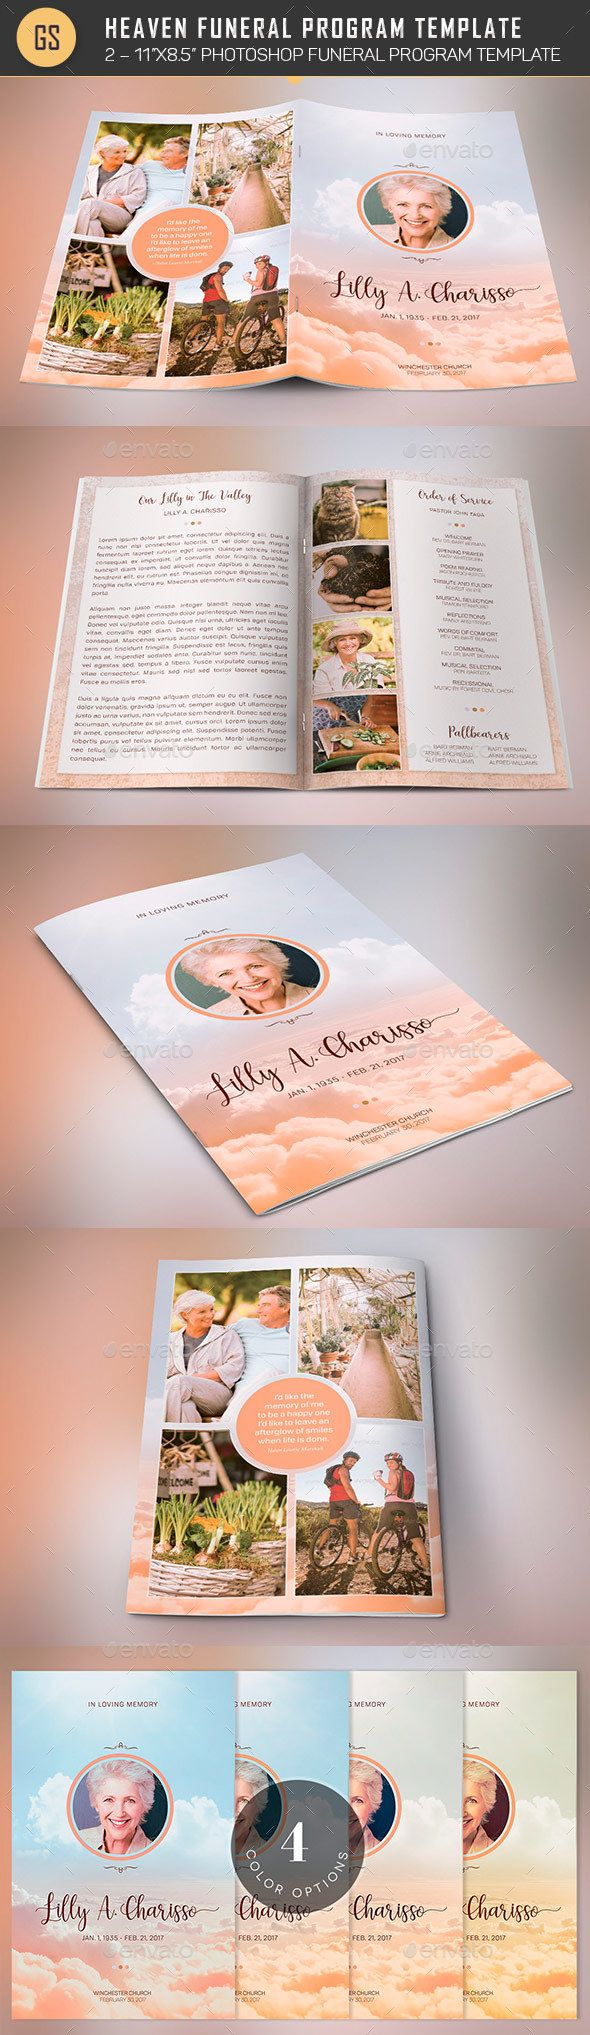 Heaven Funeral Program PSD Template by Godserv2 Heaven Funeral Program PSD Template is for showcasing many images of your loved one. Use 9-10 imagesof family members and the hobb